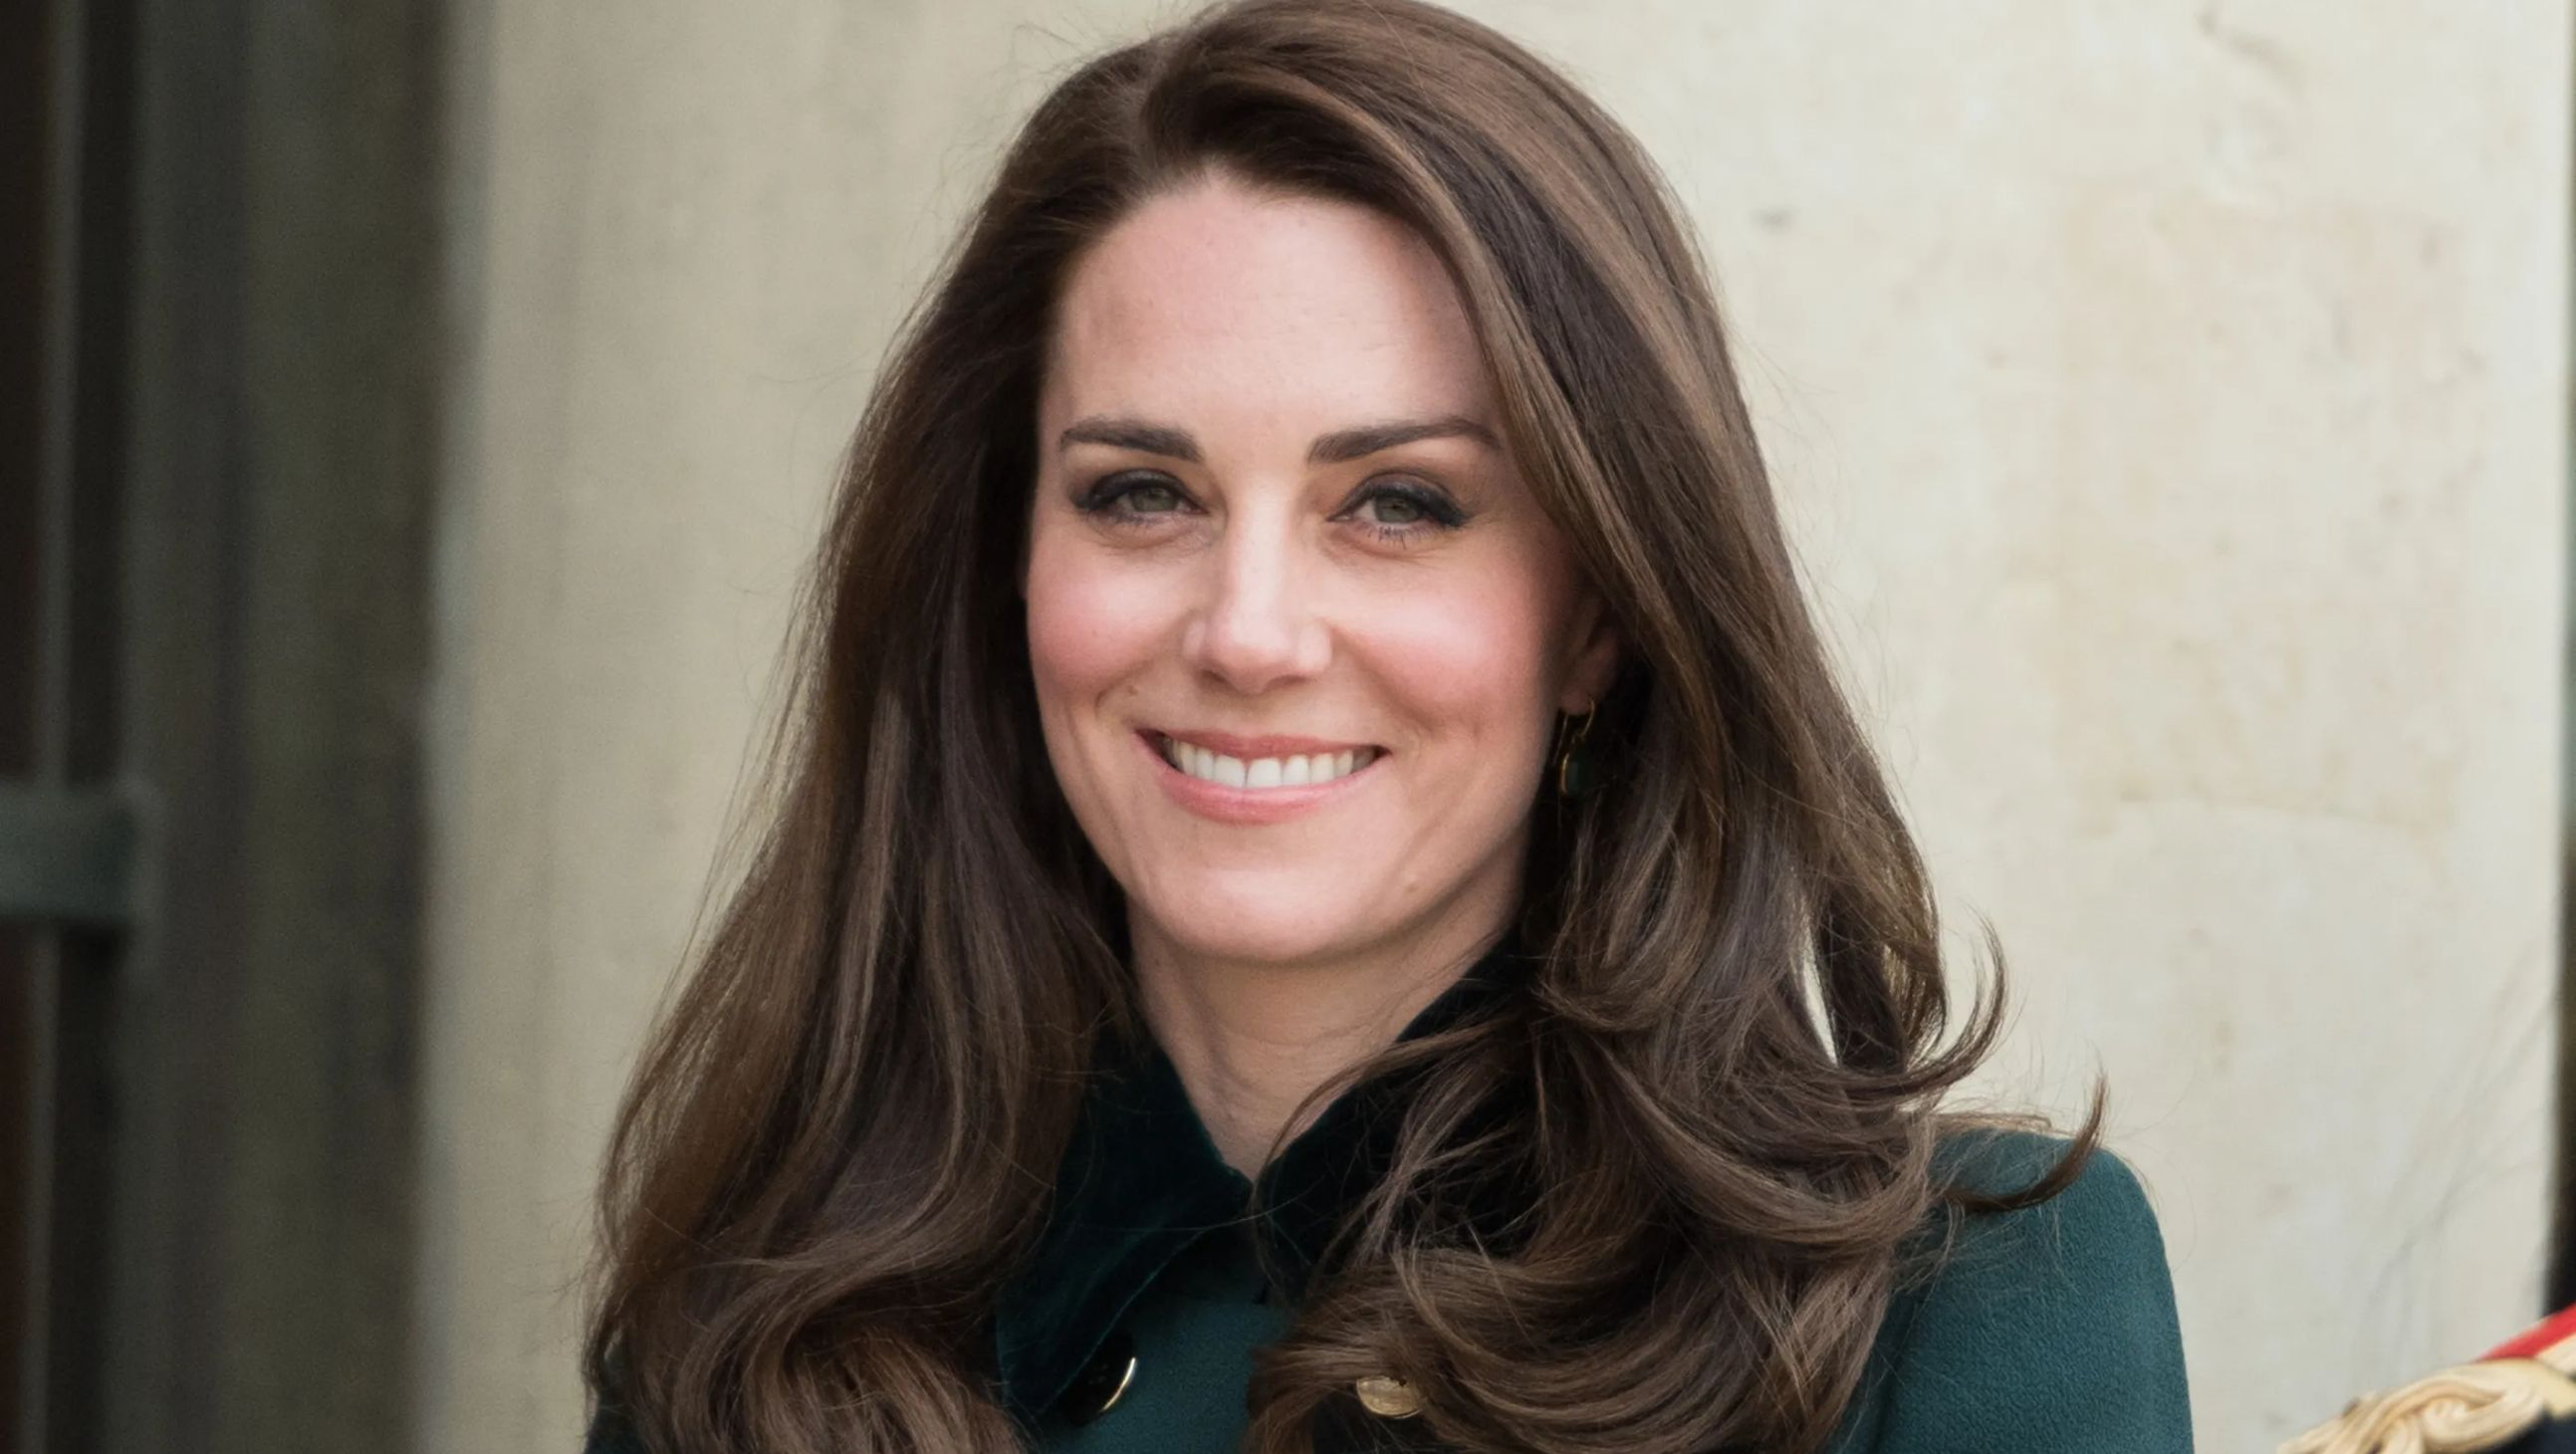 Kate Middleton is the love of Prince William's life